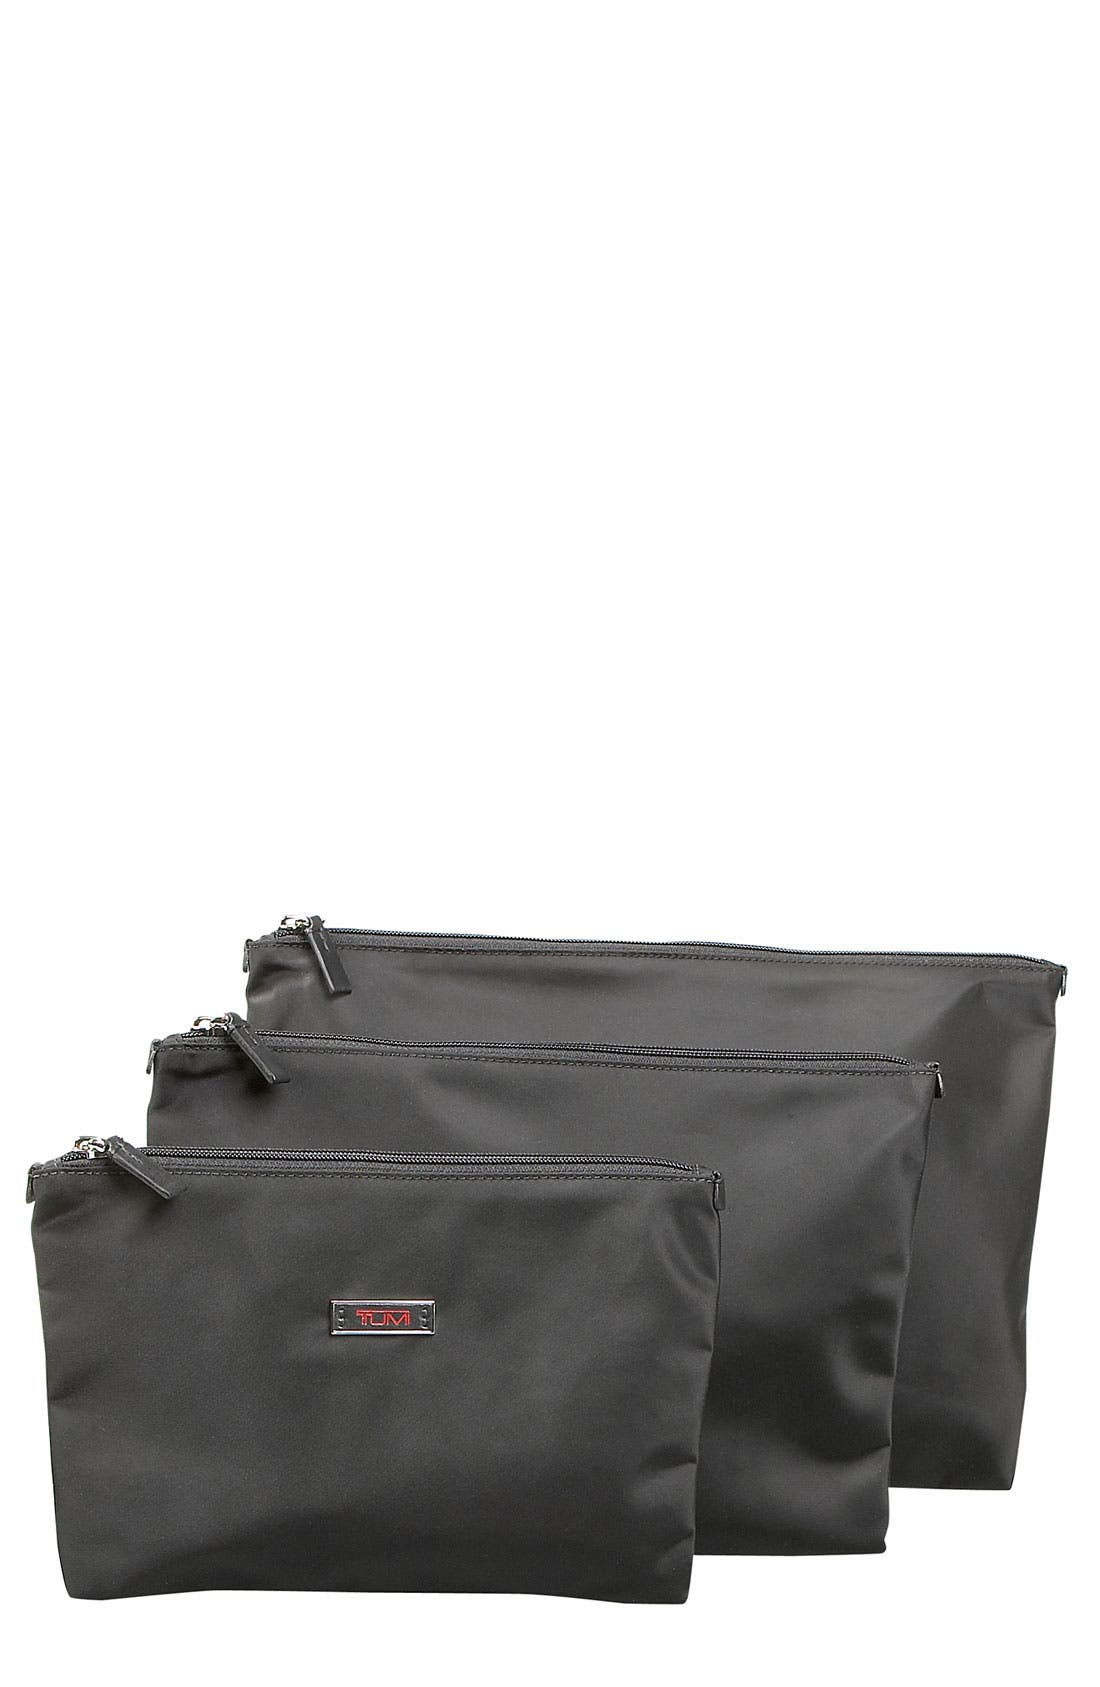 Alternate Image 1 Selected - Tumi Flat Pouch Set (3-Pack)